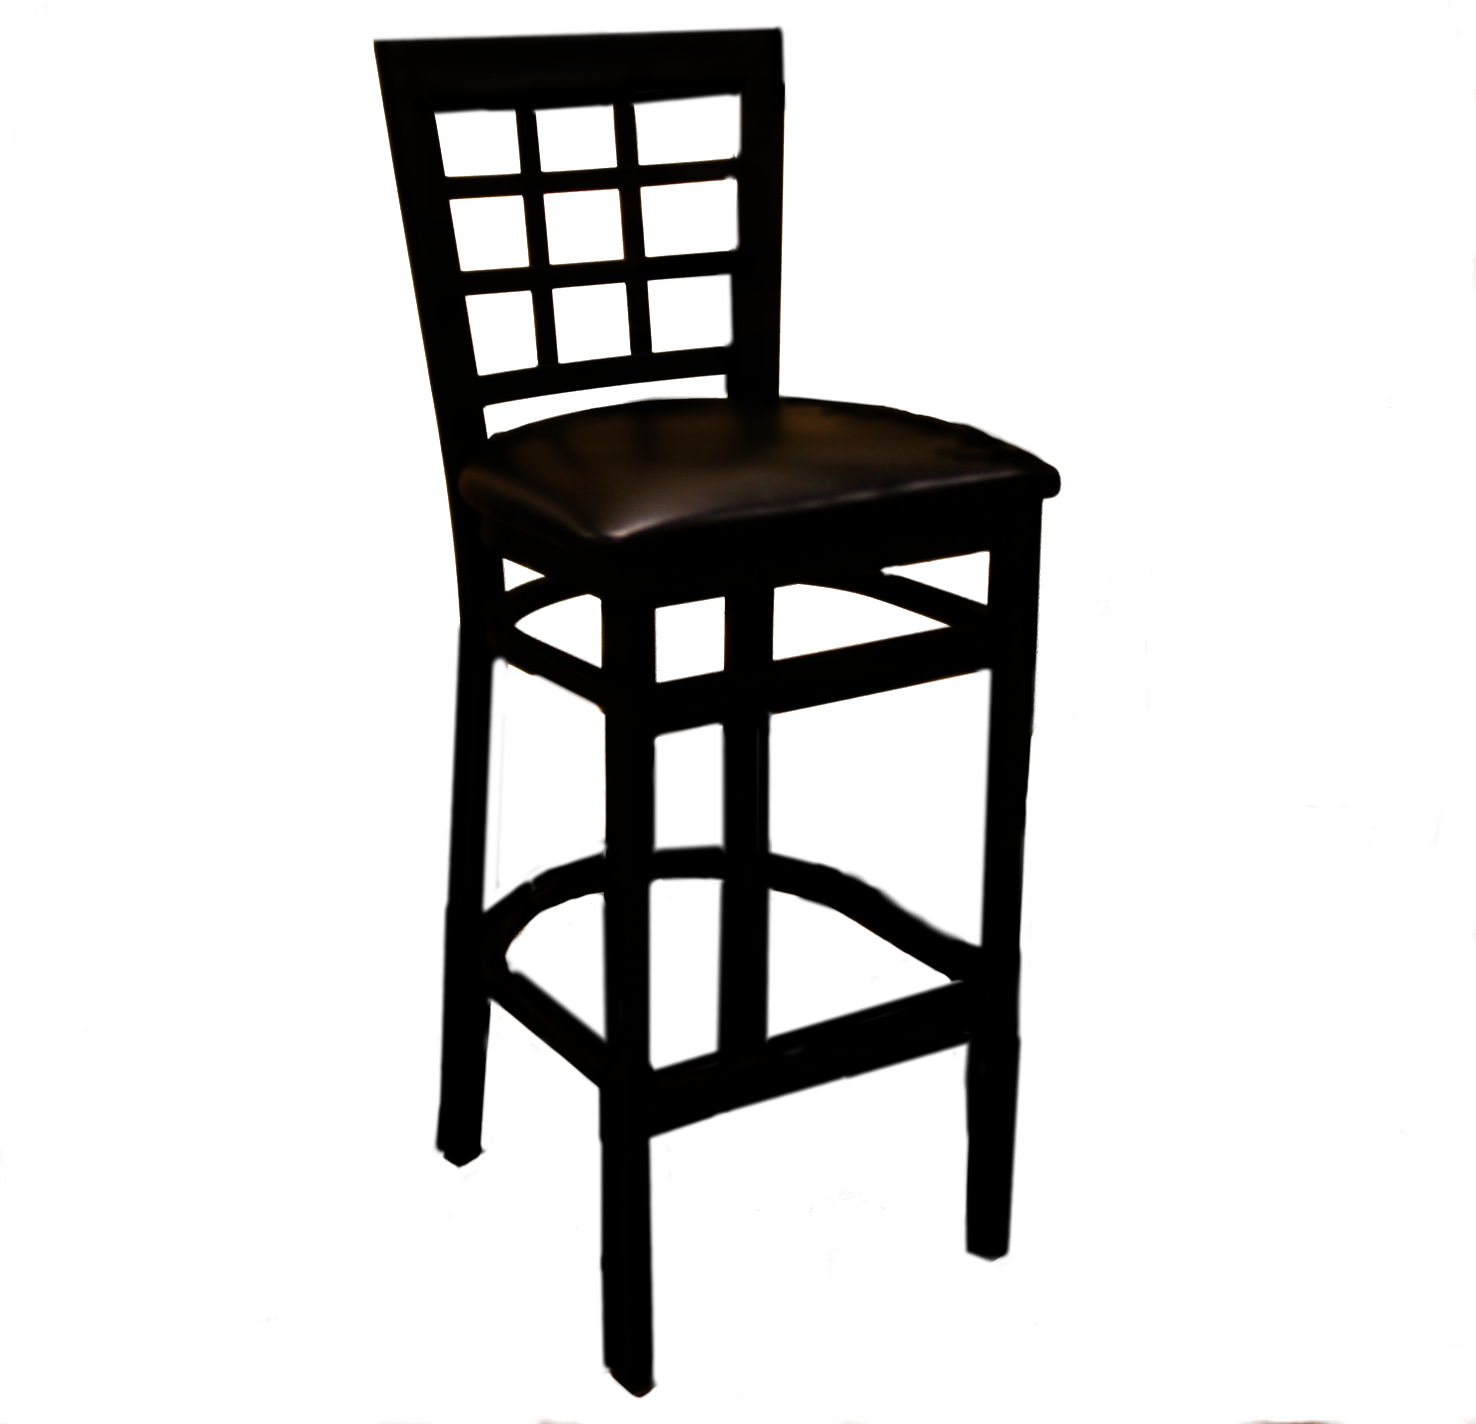 Bar Chairs Black Party Safari Ohio Cleveland Tent  : barstool i from partysafariohio.com size 1476 x 1424 png 331kB